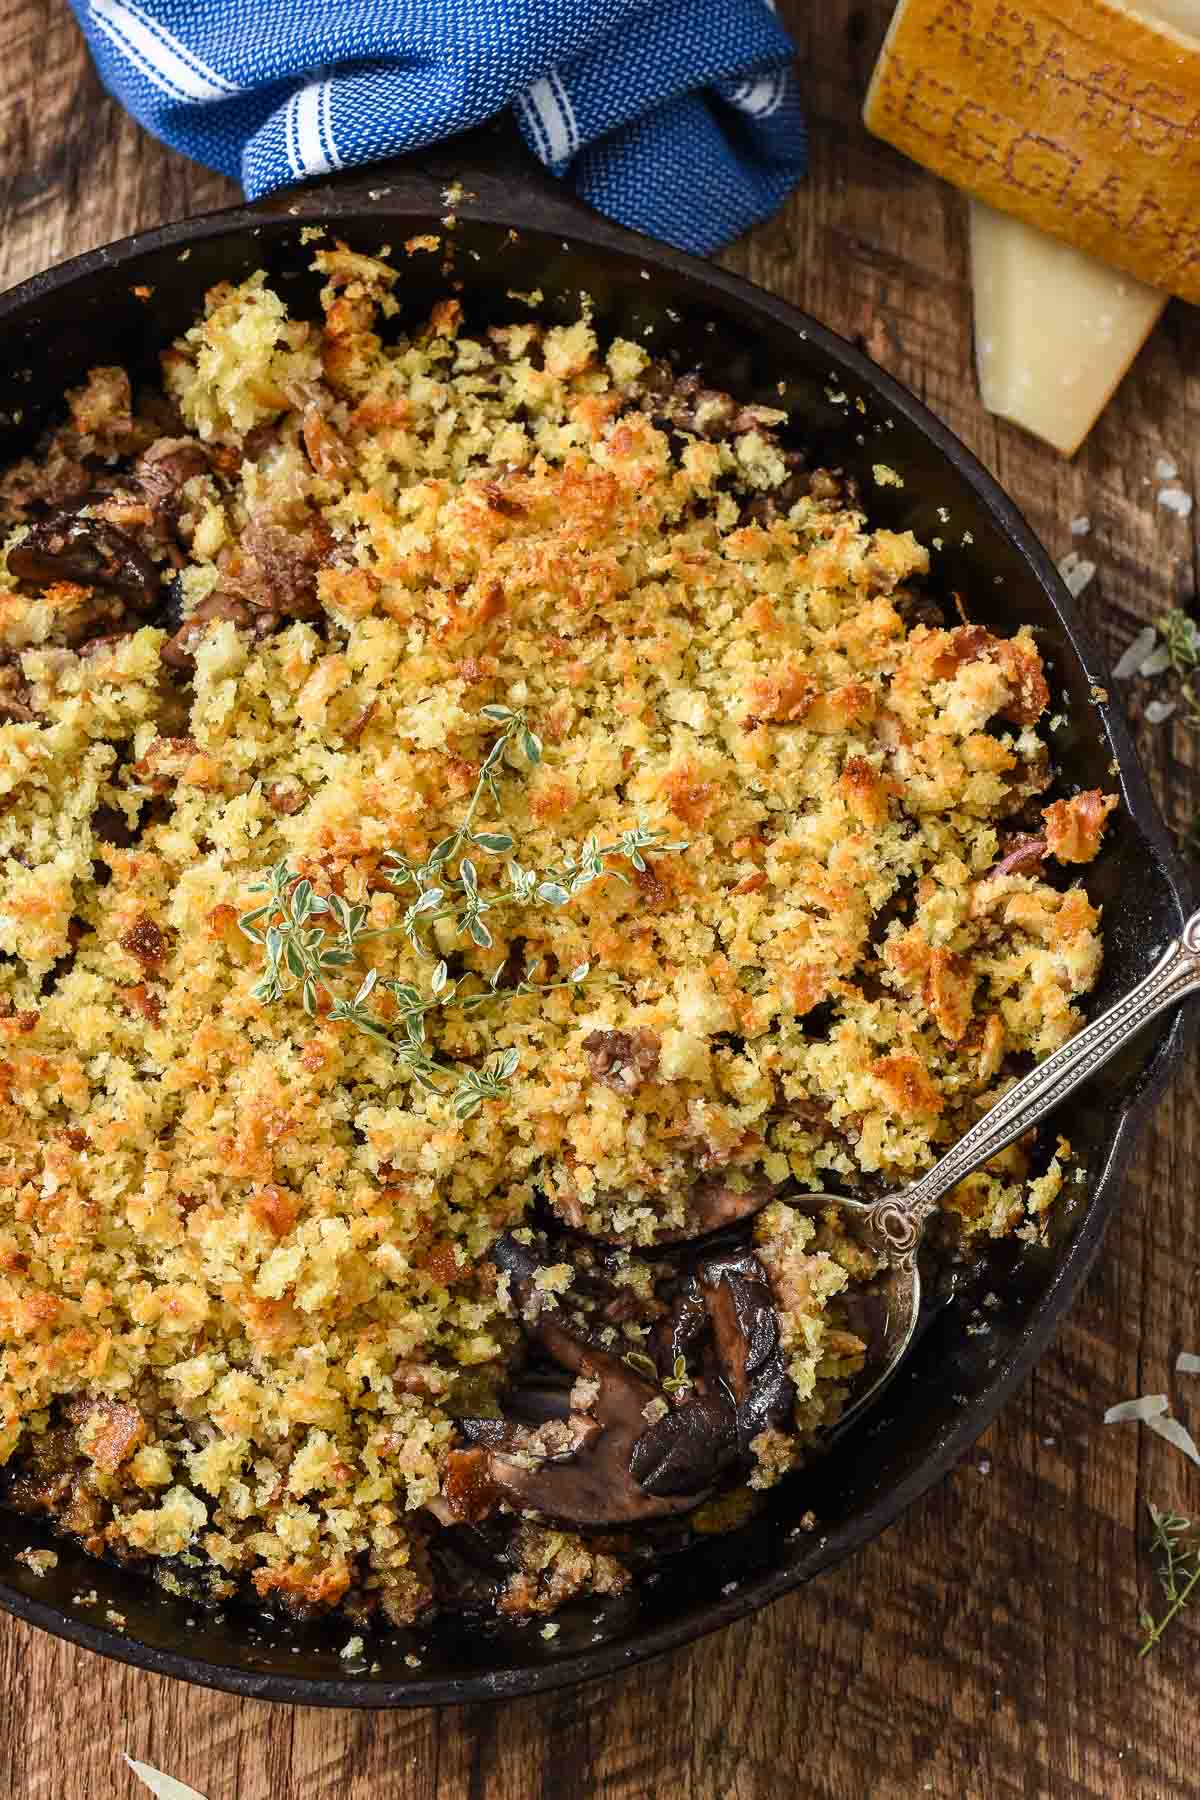 These Baked Mushrooms with Red Wine and Parmesan Breadcrumbs are the perfect side dish for the holidays or an elegant weeknight.